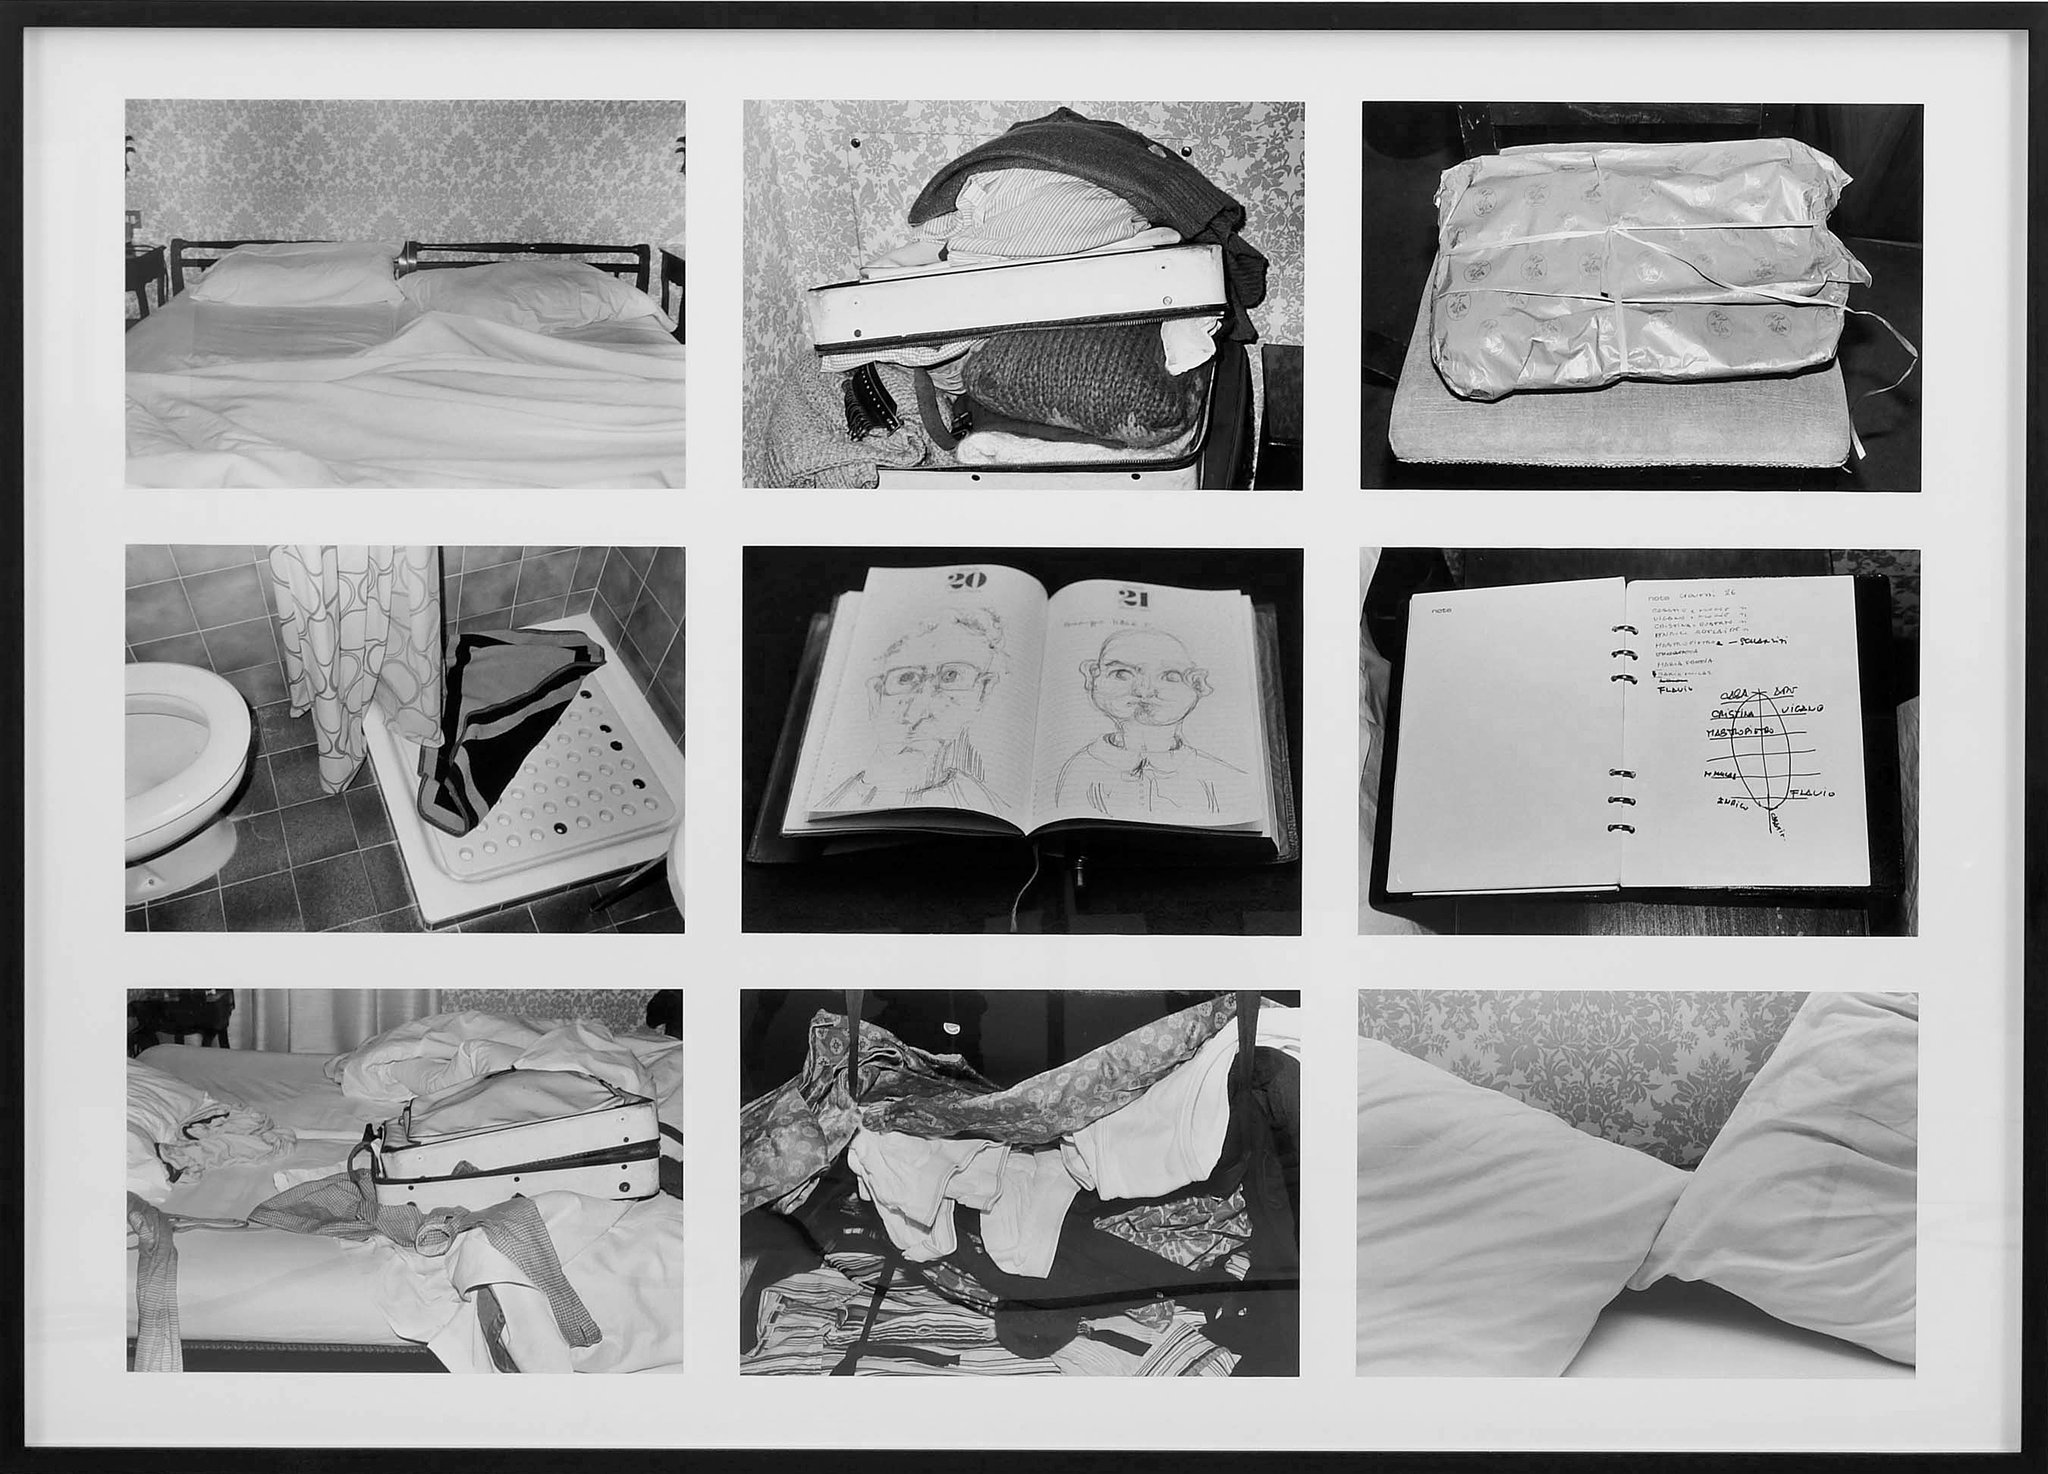 """Room 43 — February 28th,"" made by Sophie Calle posing as a chambermaid to photograph the messes left by guests."